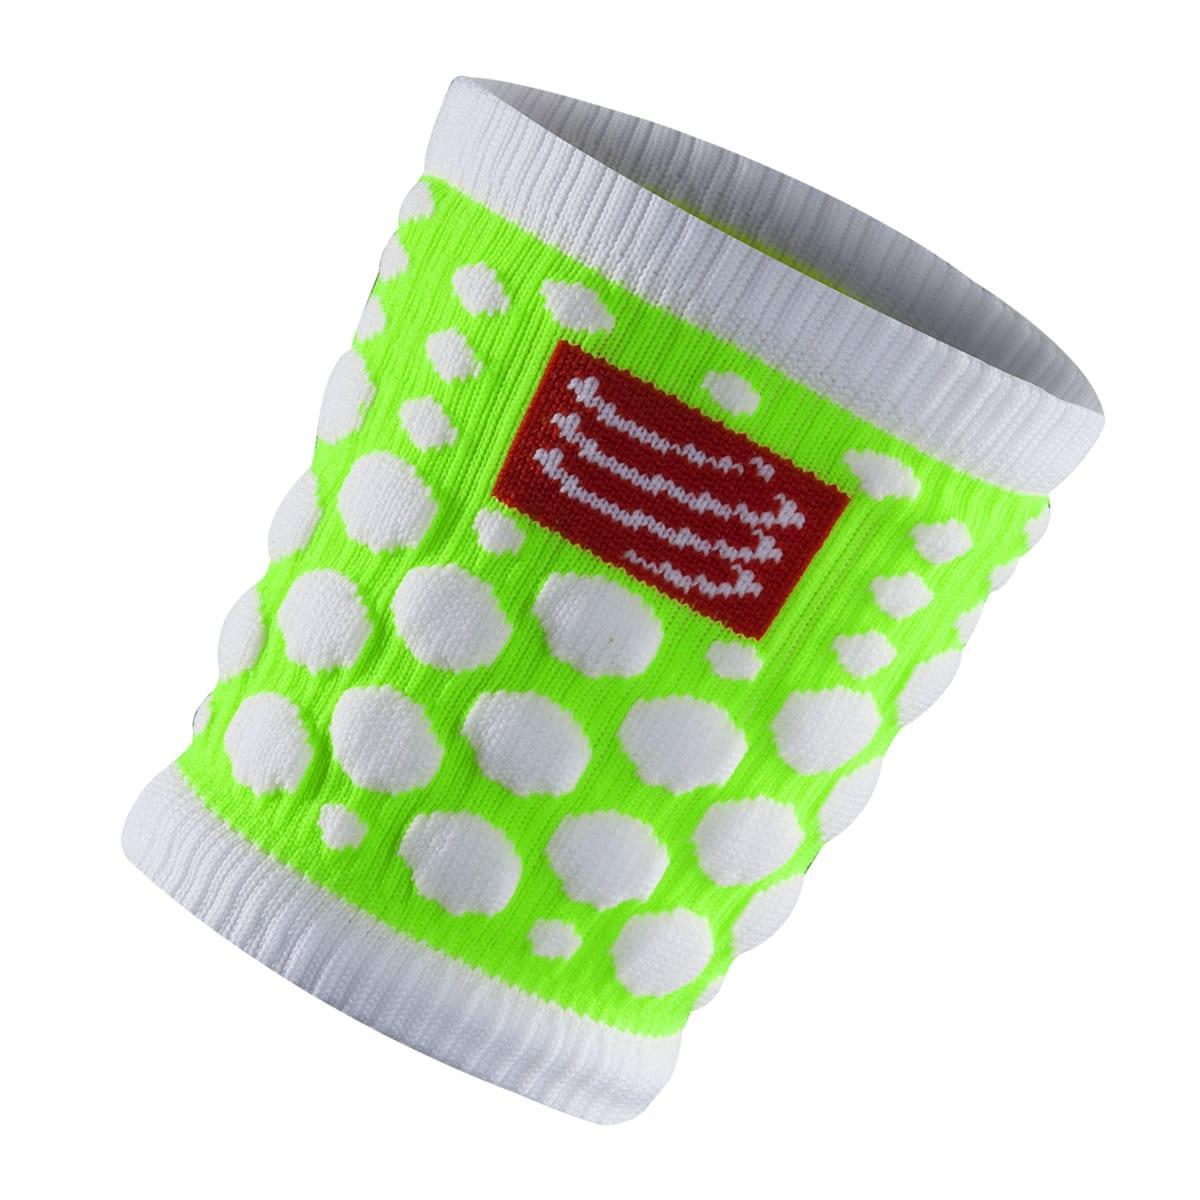 Sweat Bands 3D.dots - Compressport - grün